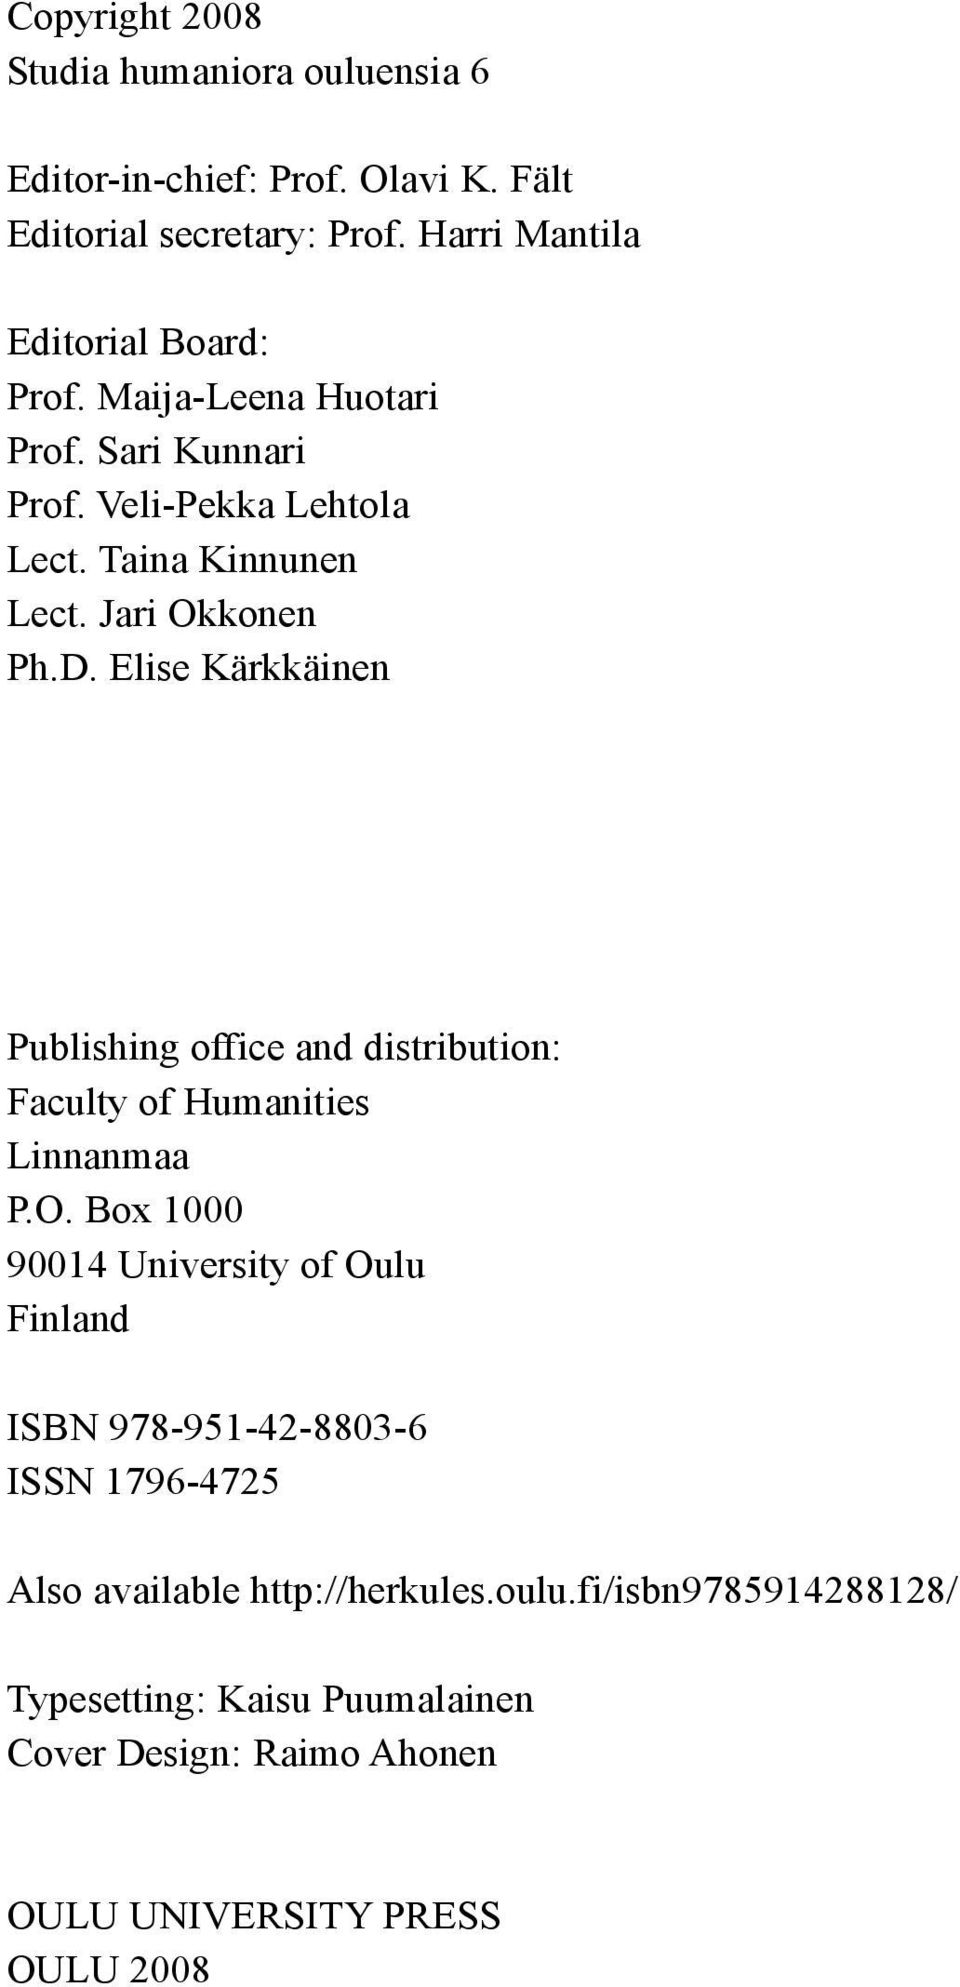 Jari Okkonen Ph.D. Elise Kärkkäinen Publishing office and distribution: Faculty of Humanities Linnanmaa P.O. Box 1000 90014 University of Oulu Finland ISBN 978-951-42-8803-6 ISSN 1796-4725 Also available http://herkules.